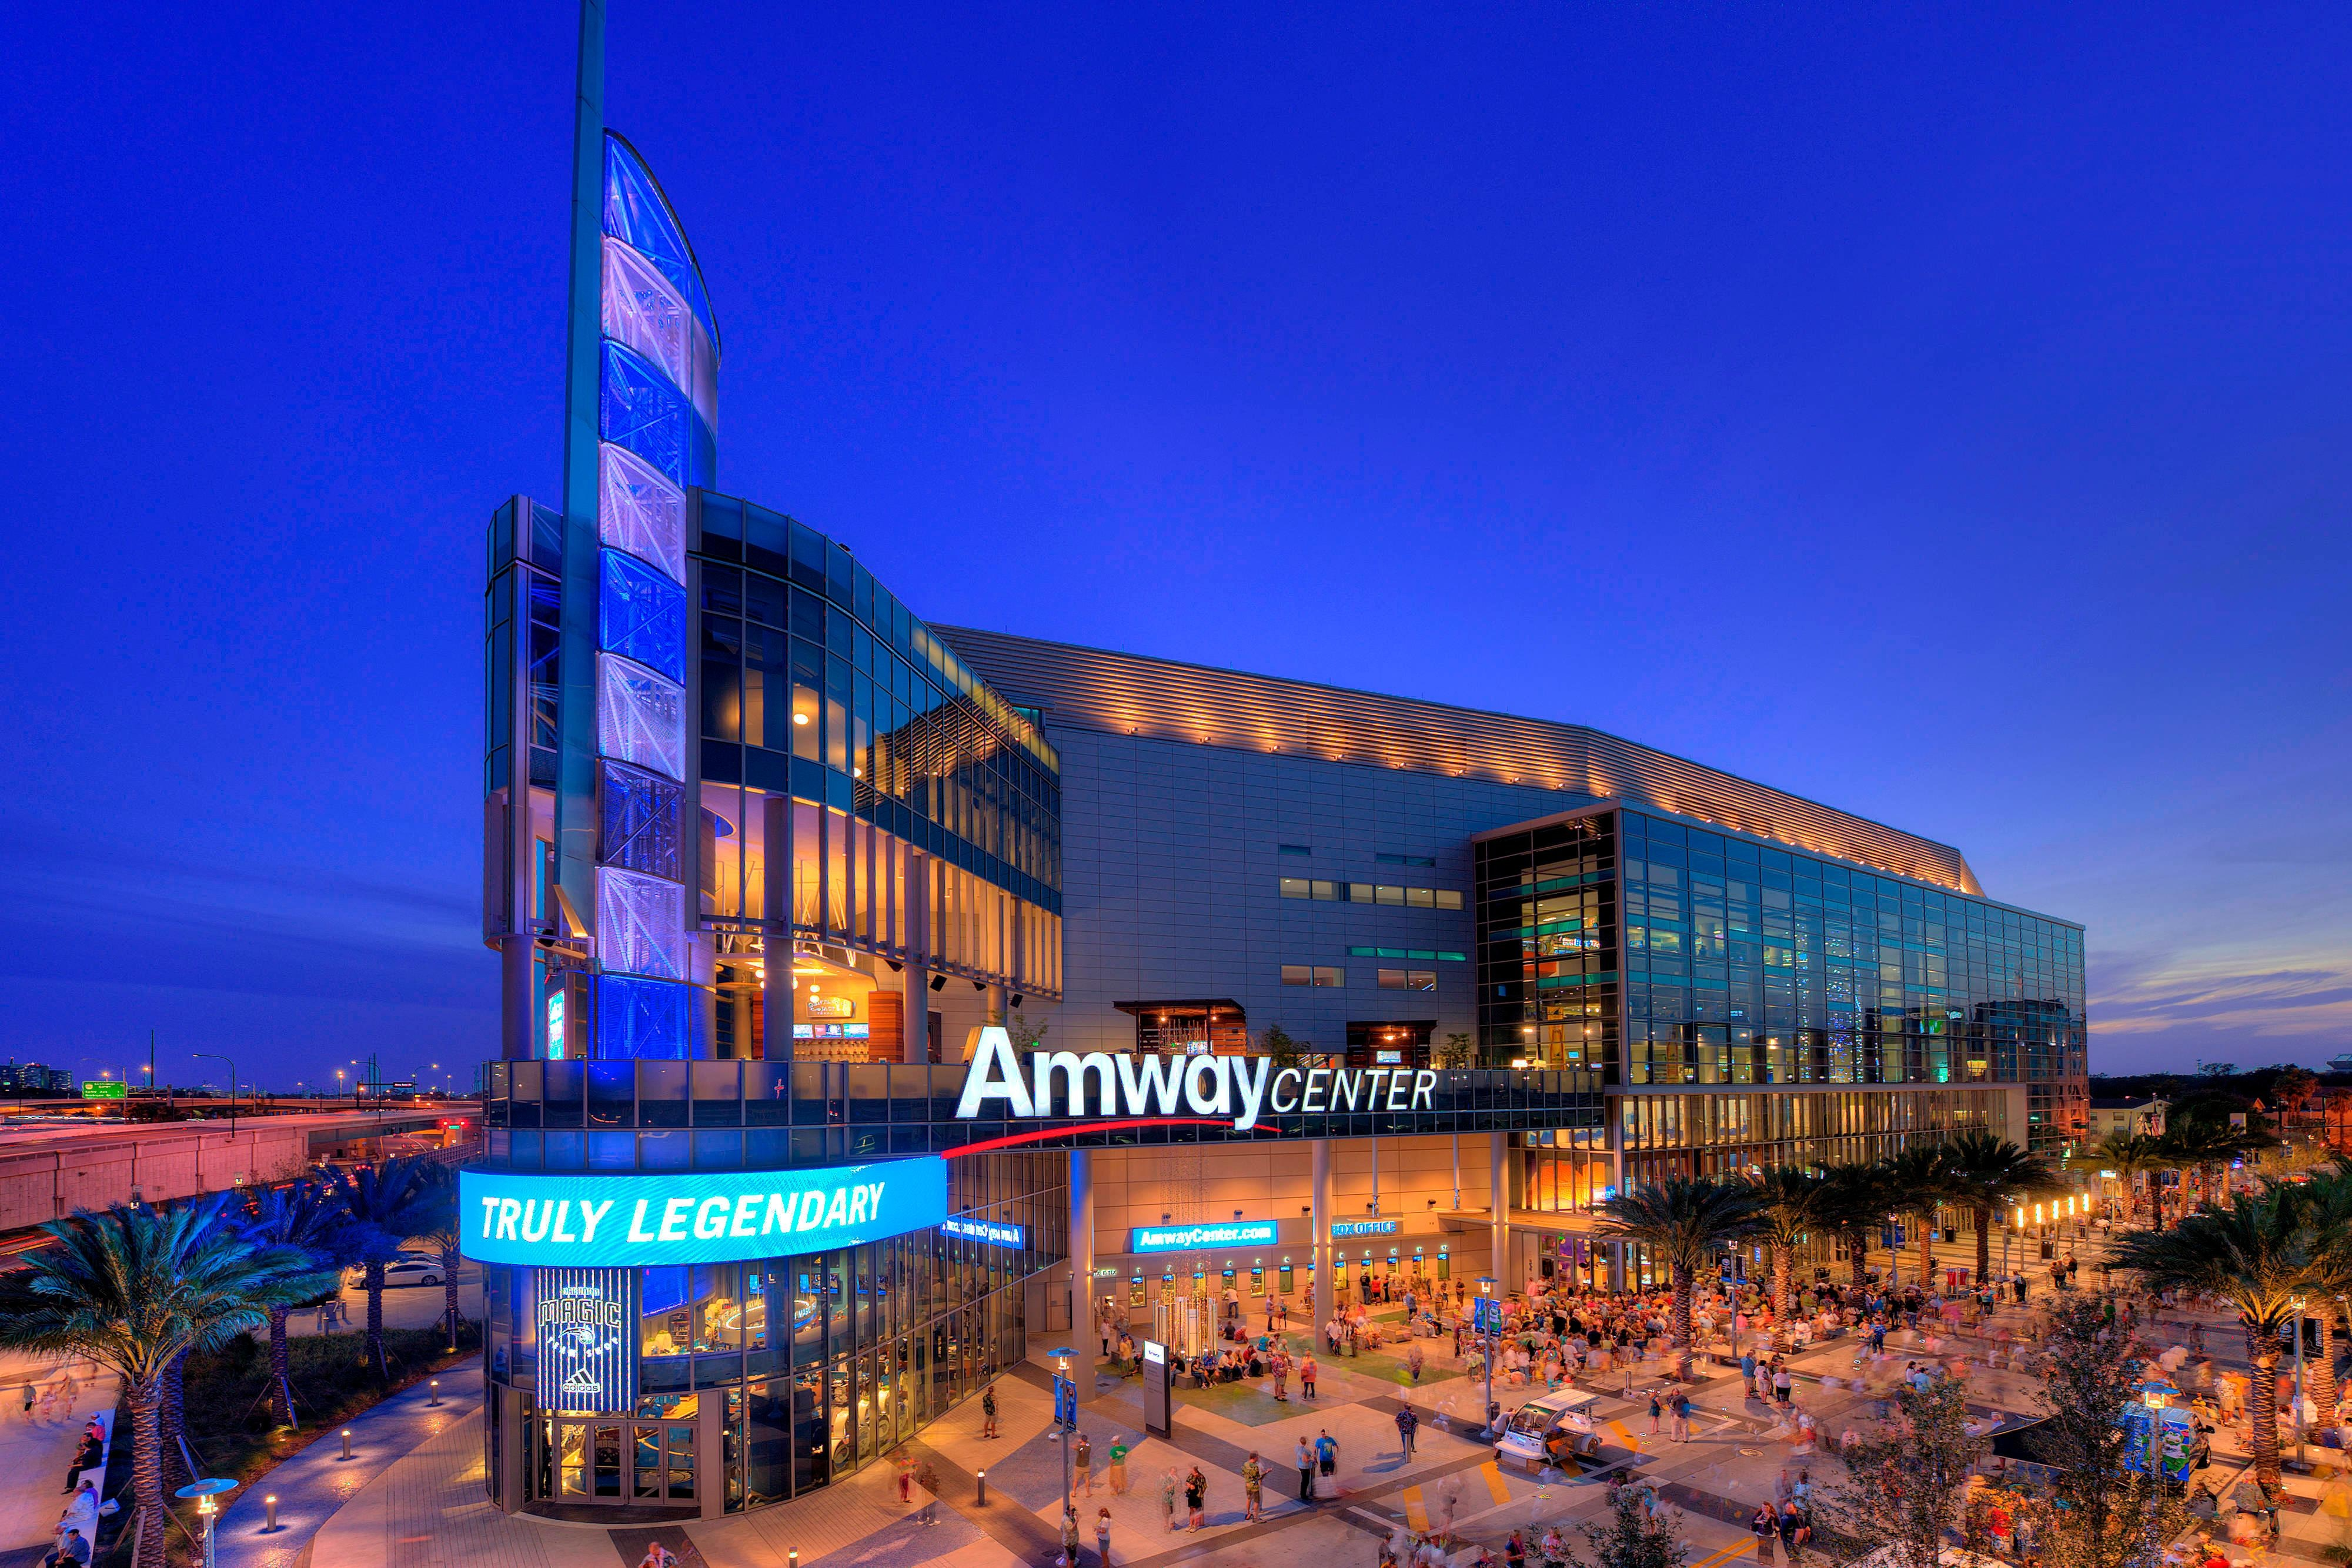 Sporthotel am Amway Center